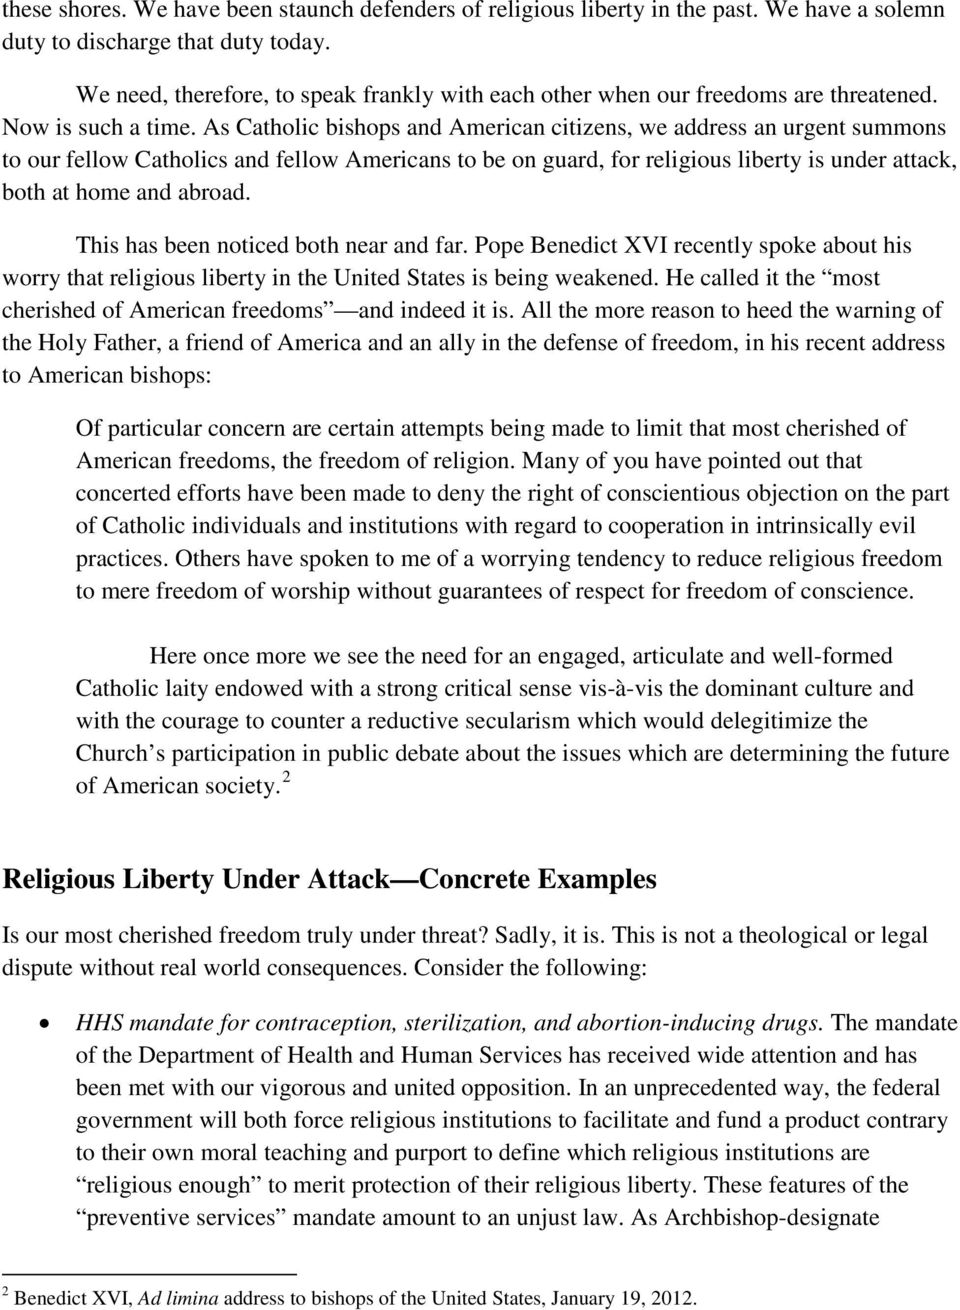 As Catholic bishops and American citizens, we address an urgent summons to our fellow Catholics and fellow Americans to be on guard, for religious liberty is under attack, both at home and abroad.